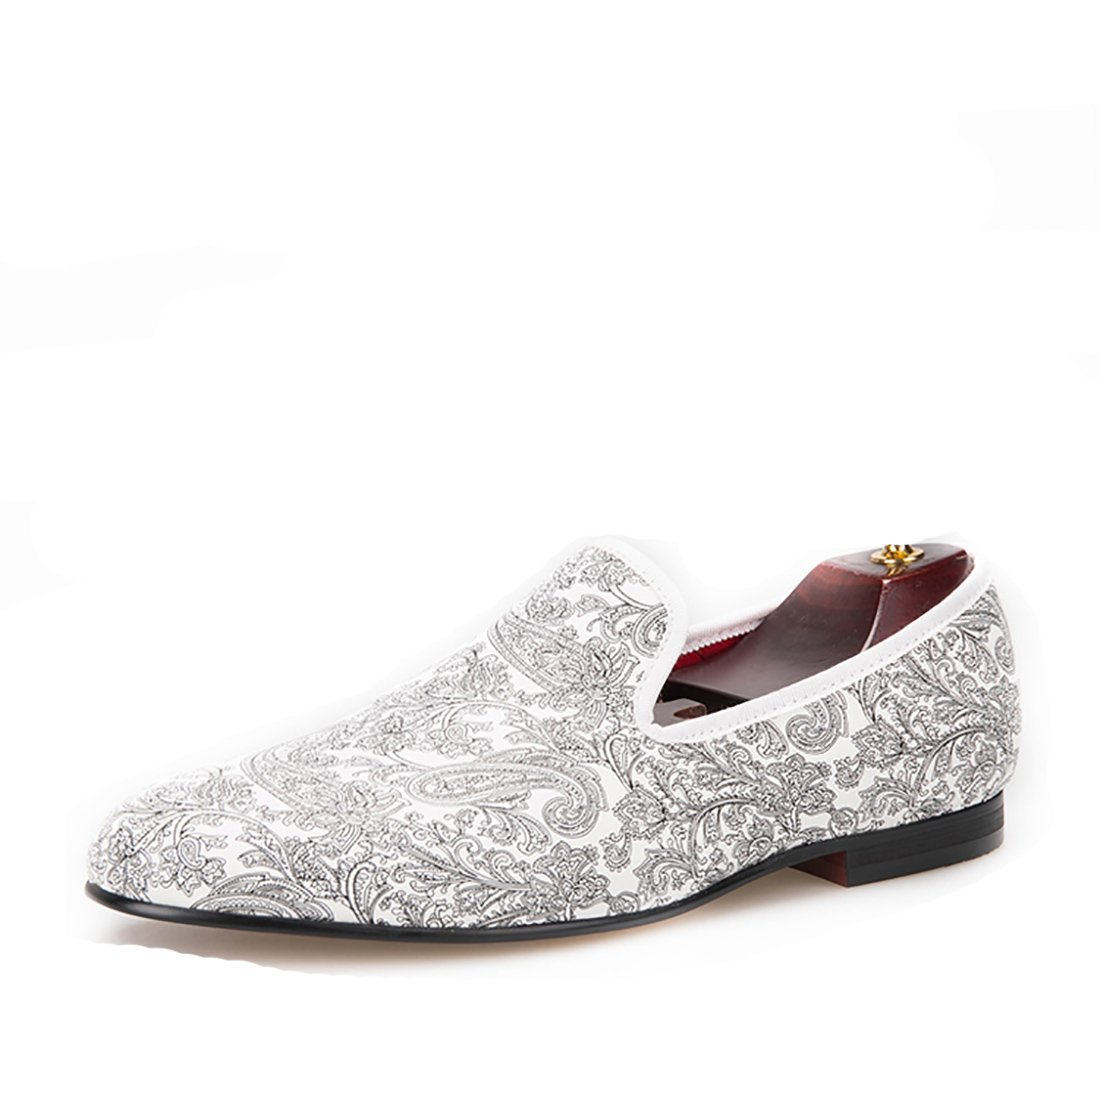 HI&HANN Paisley Prints Men's White Casual Loafer Shoes Slip-on Loafer Round Toes Smoking Slipper-12-Silver